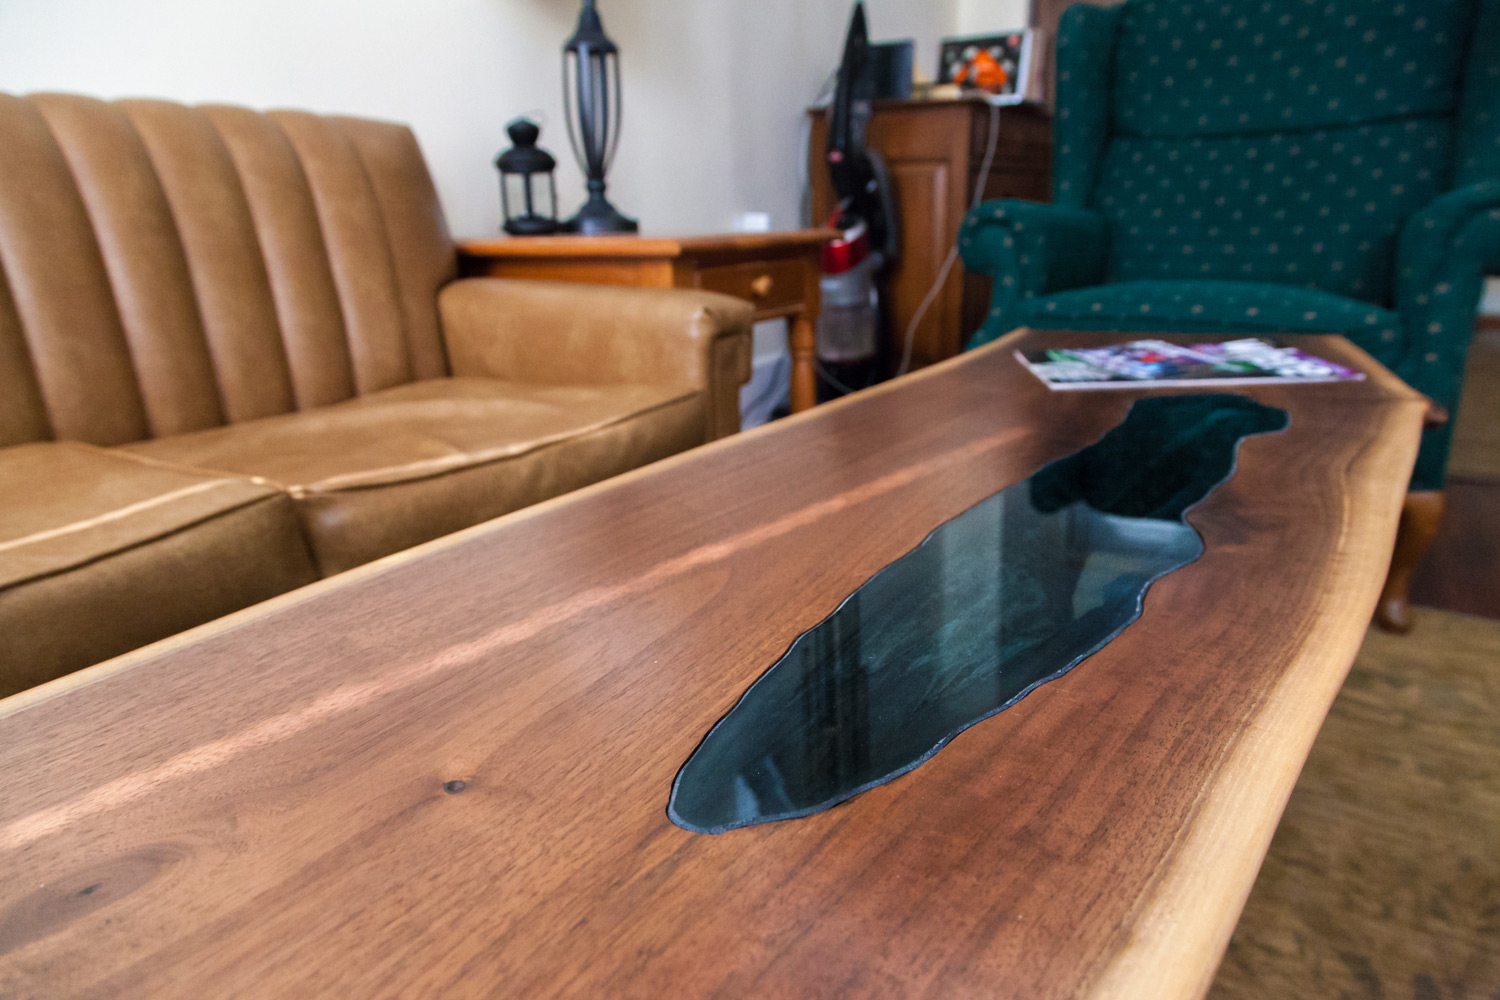 Logs do not have defects, only character. We celebrate the missing section in this walnut table with a section of inlayed blue glass. The result gives the impression of a serene mountain lake.